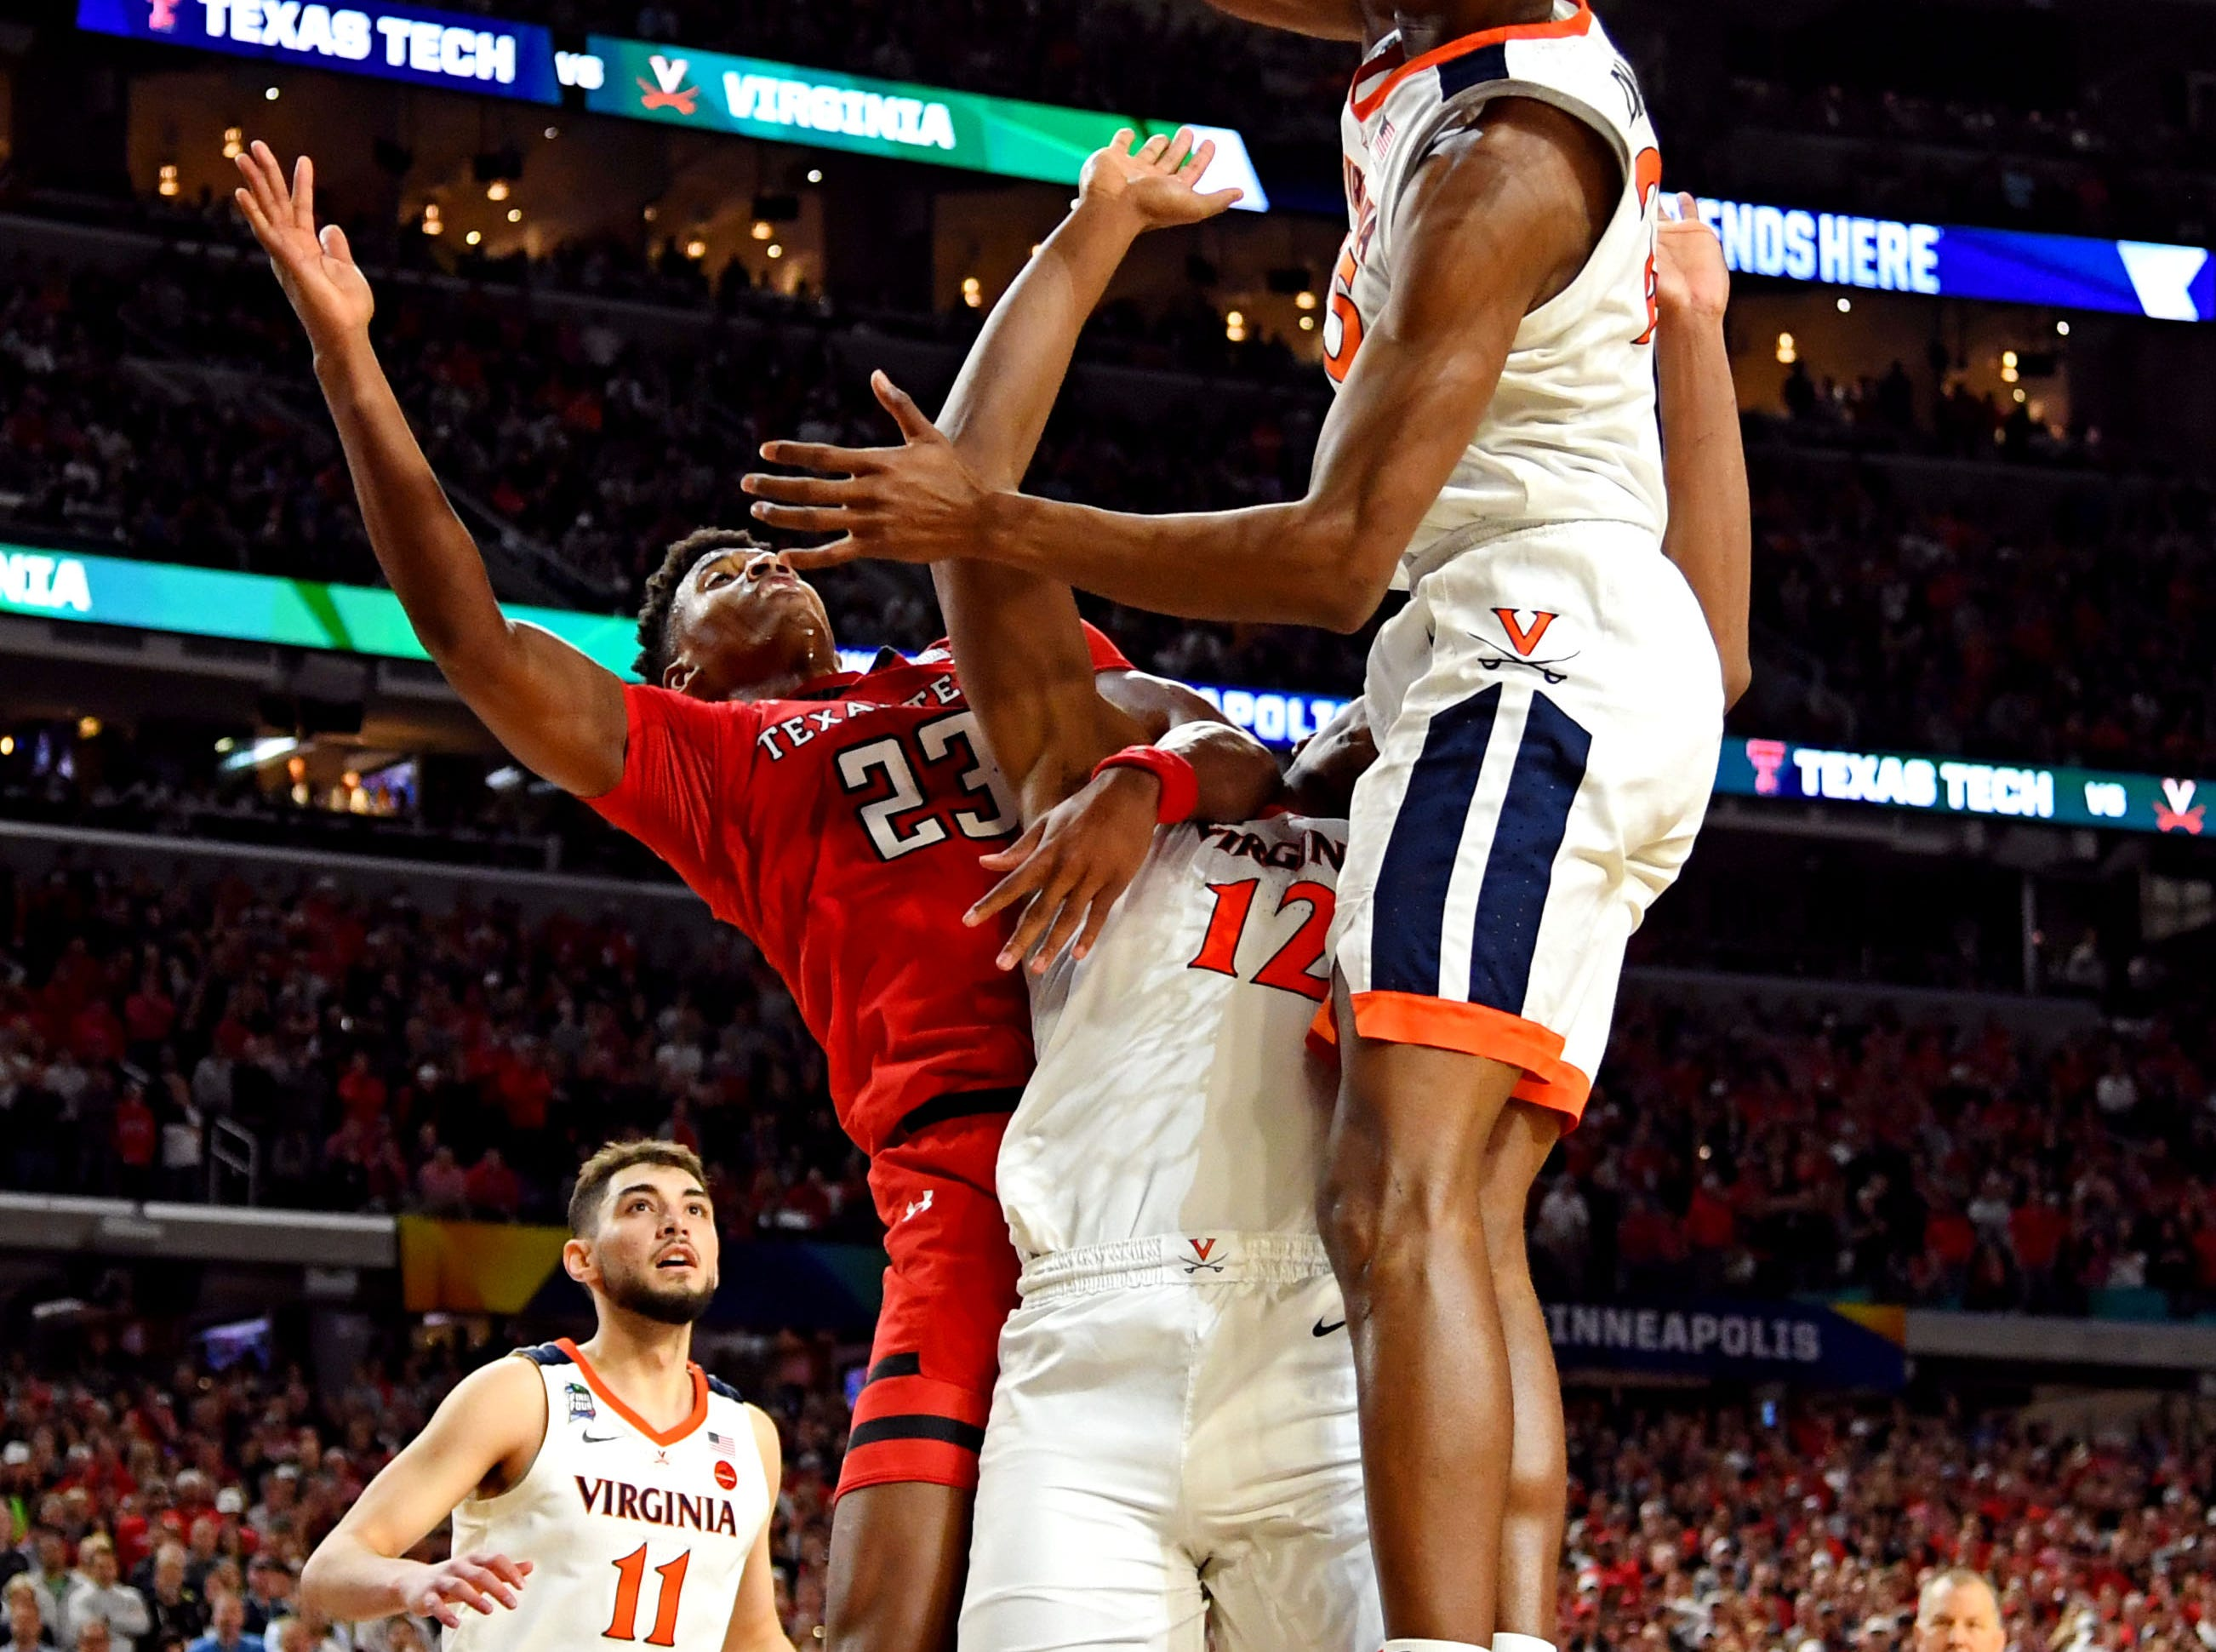 Apr 8, 2019; Minneapolis, MN, USA; Virginia Cavaliers forward Mamadi Diakite (25) blocks the shots of Texas Tech Red Raiders guard Jarrett Culver (23) during overtime in the championship game of the 2019 men's Final Four at US Bank Stadium. Mandatory Credit: Bob Donnan-USA TODAY Sports